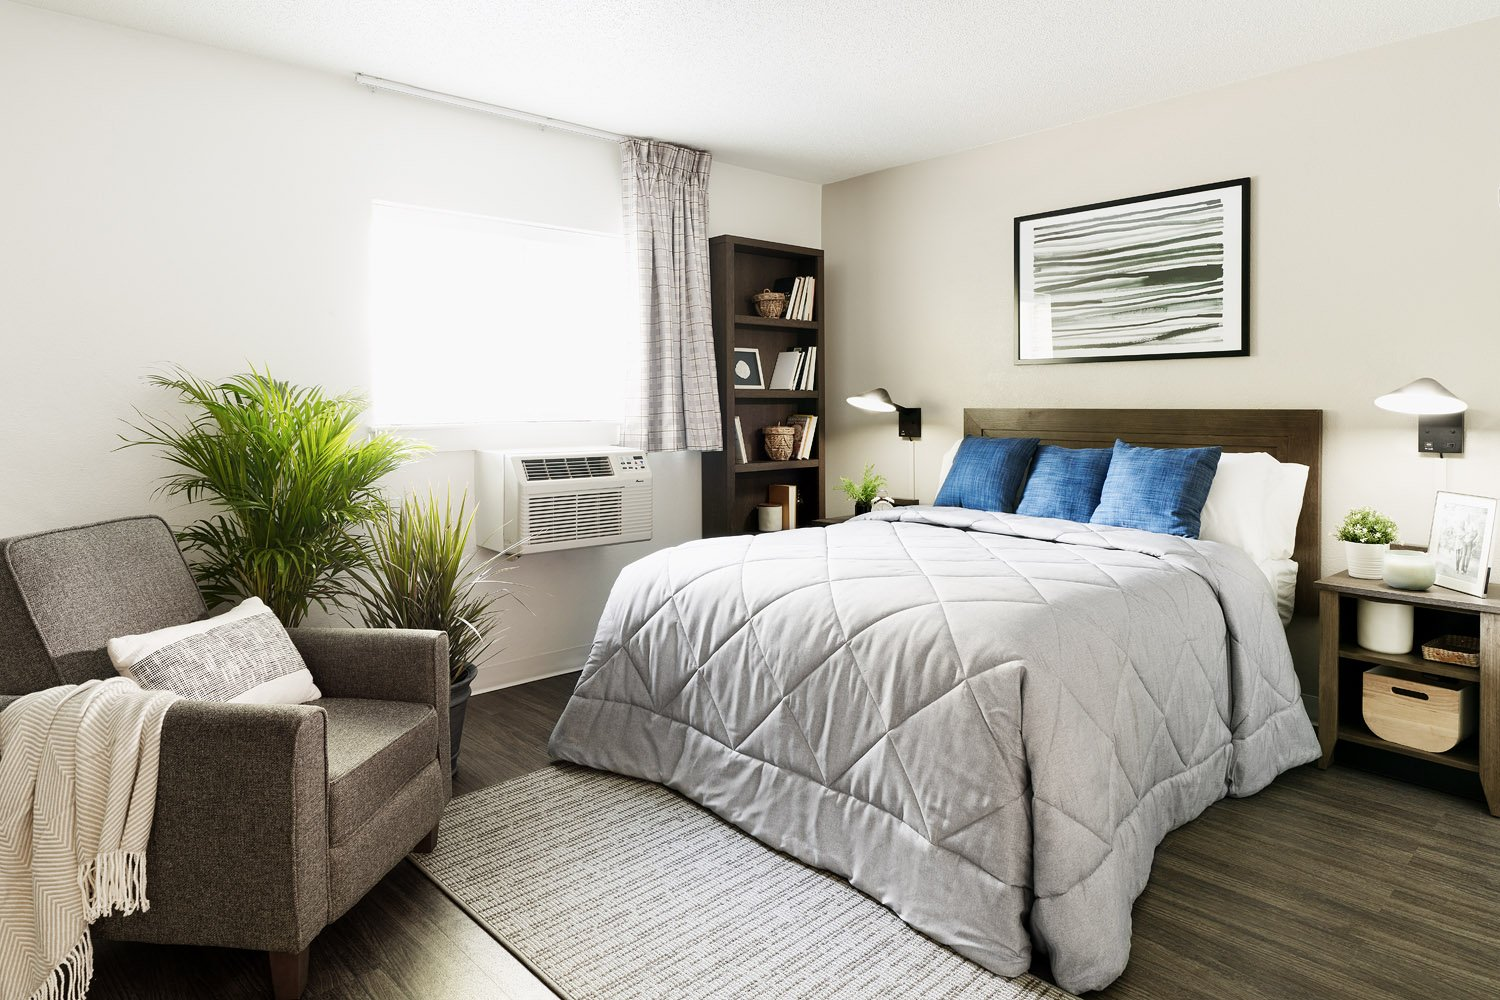 InTown Suites Extended Stay New Orleans LA - Metairie